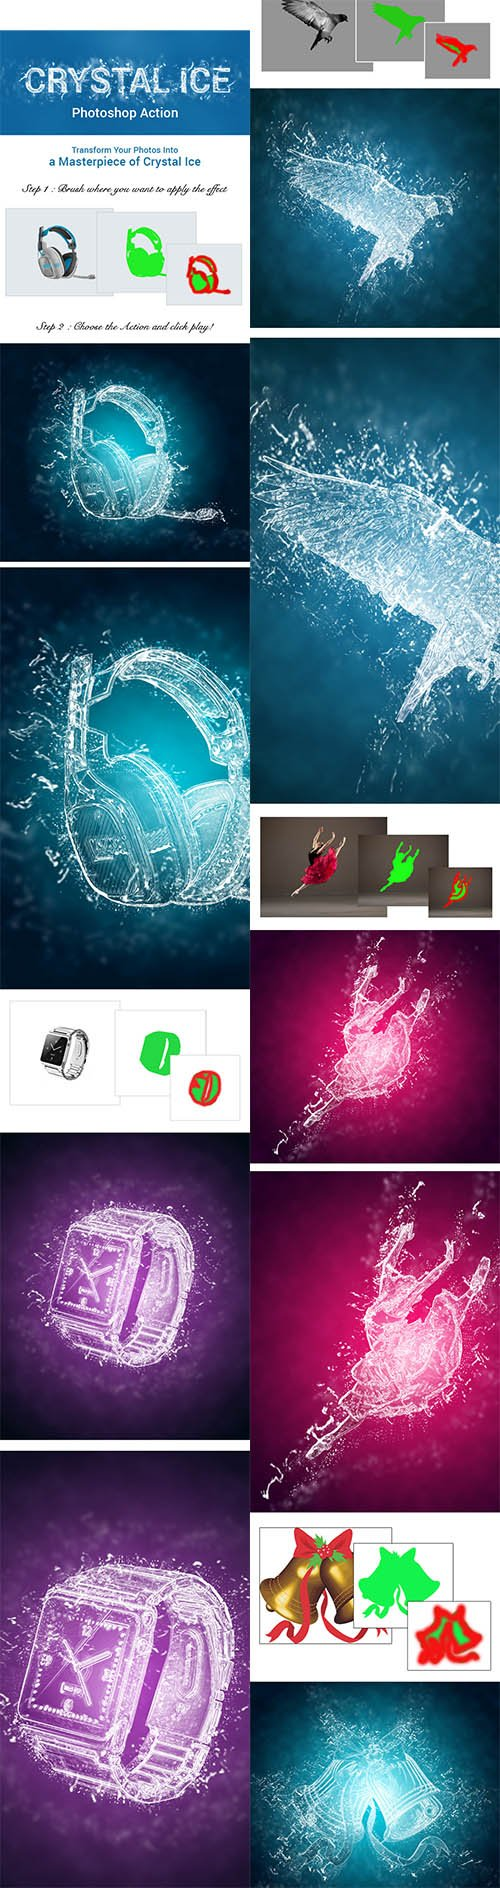 GraphicRiver - Crystal Ice Photoshop Action 11083870